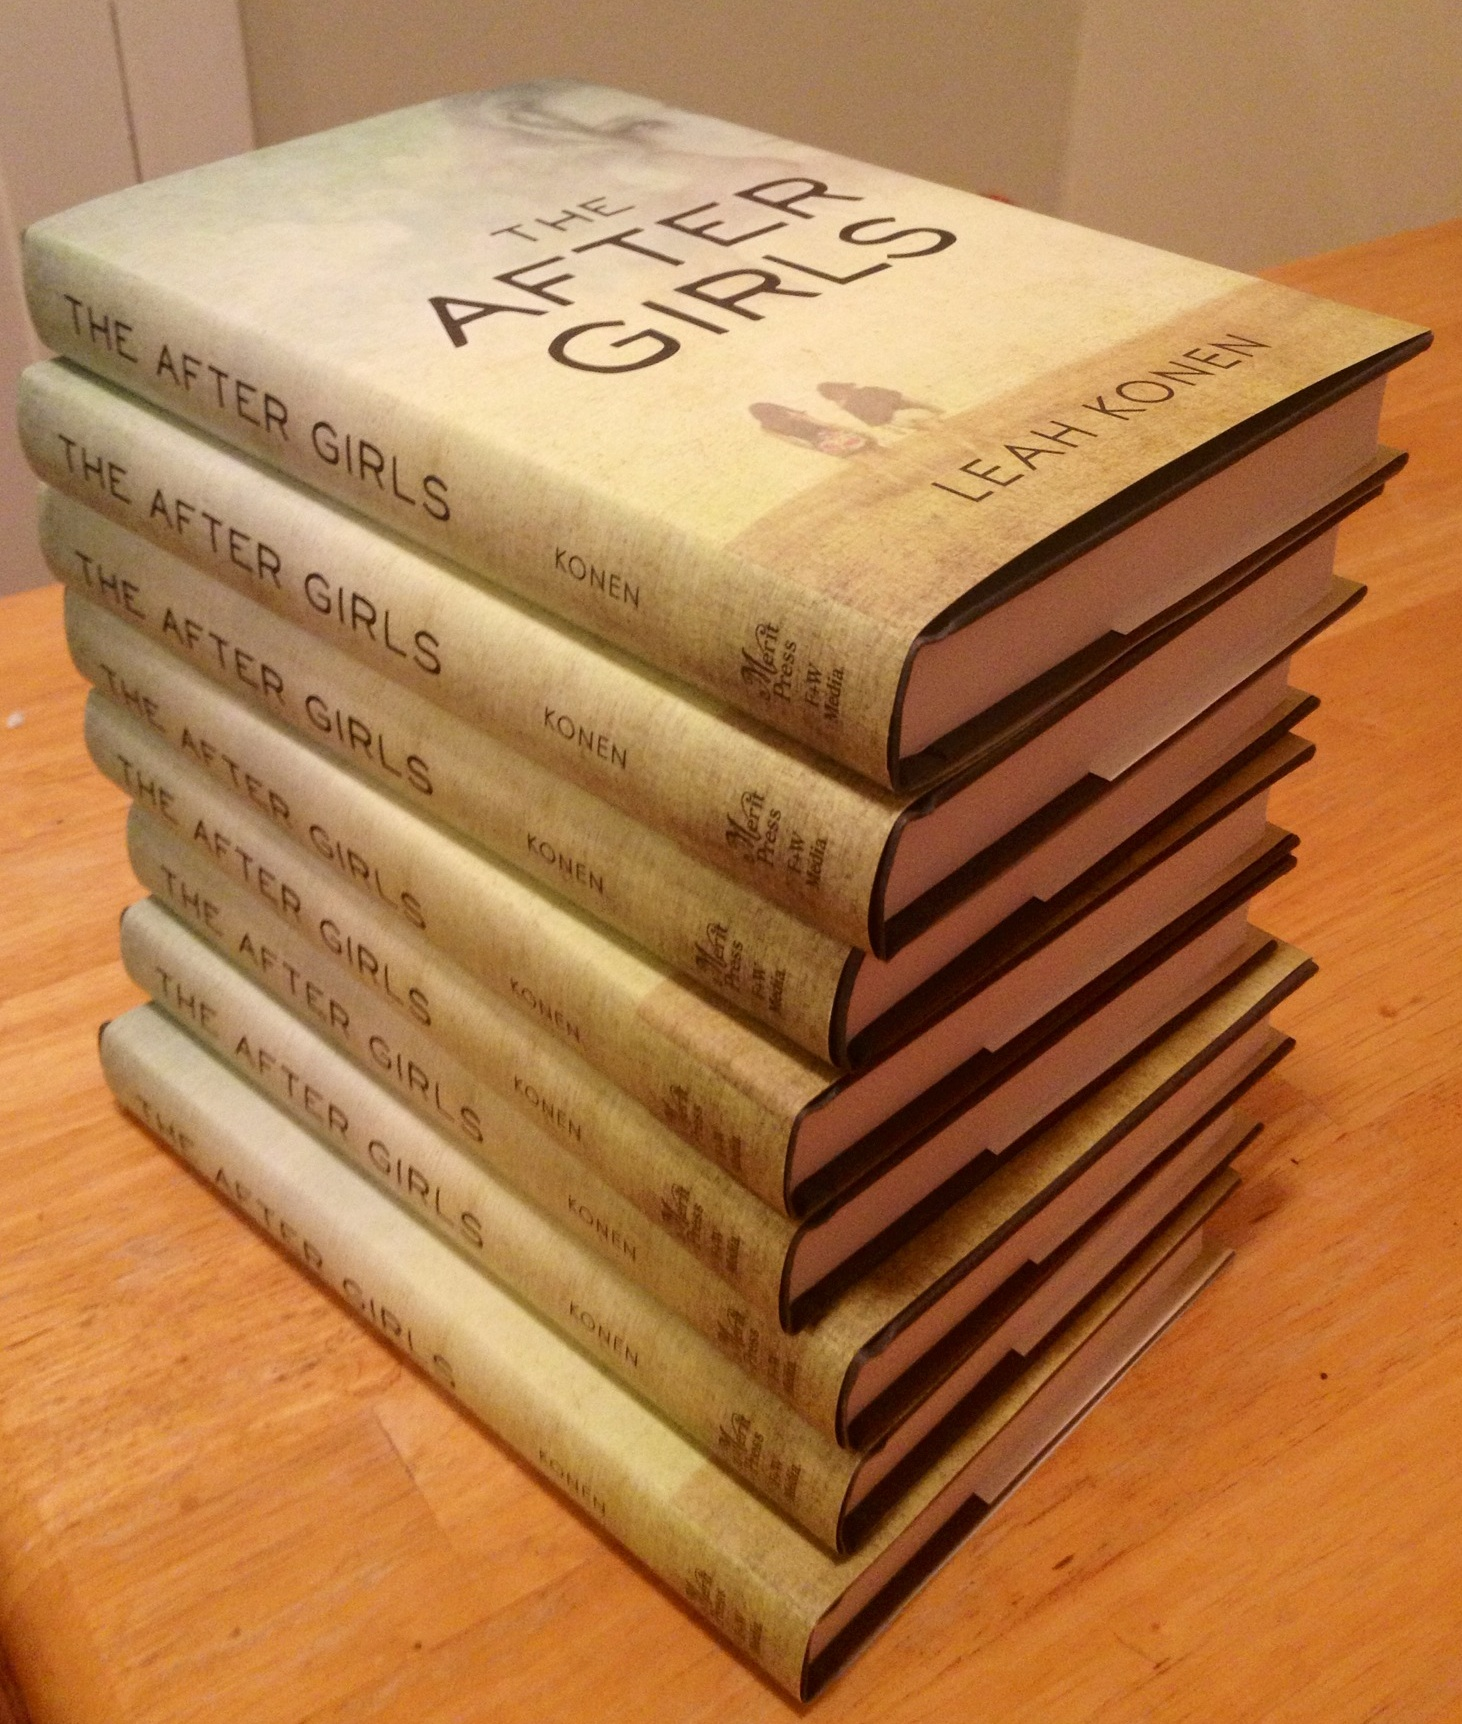 author-copies-the-after-girls